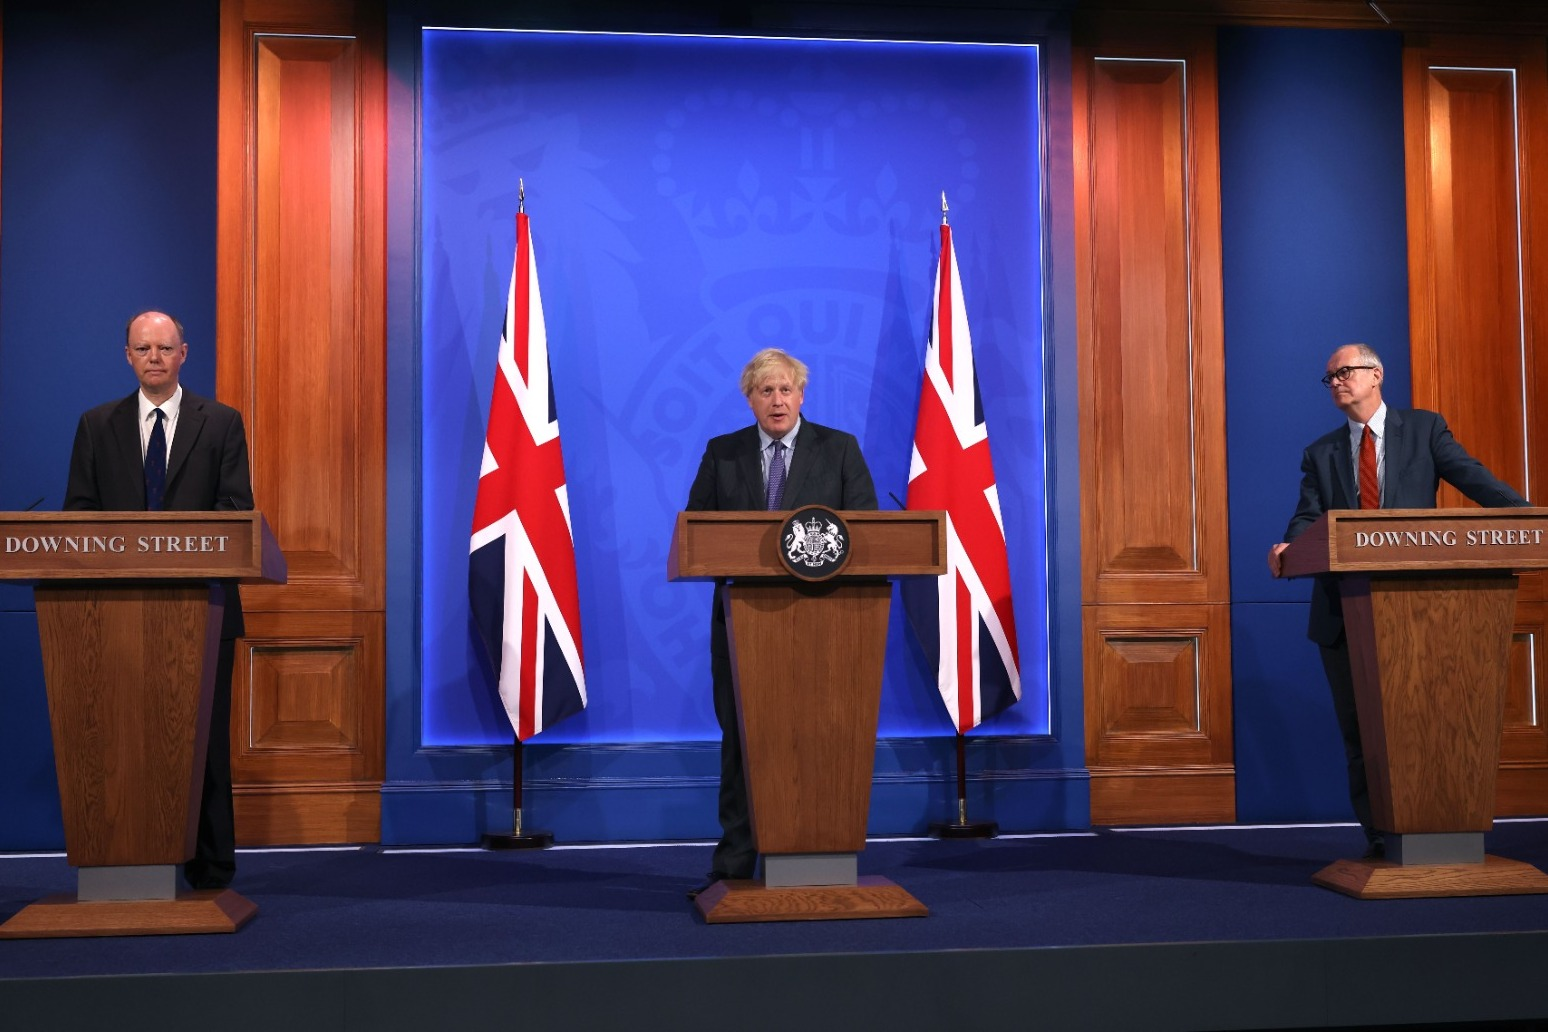 PM set new date of 19th July for end of Covid restrictions in England